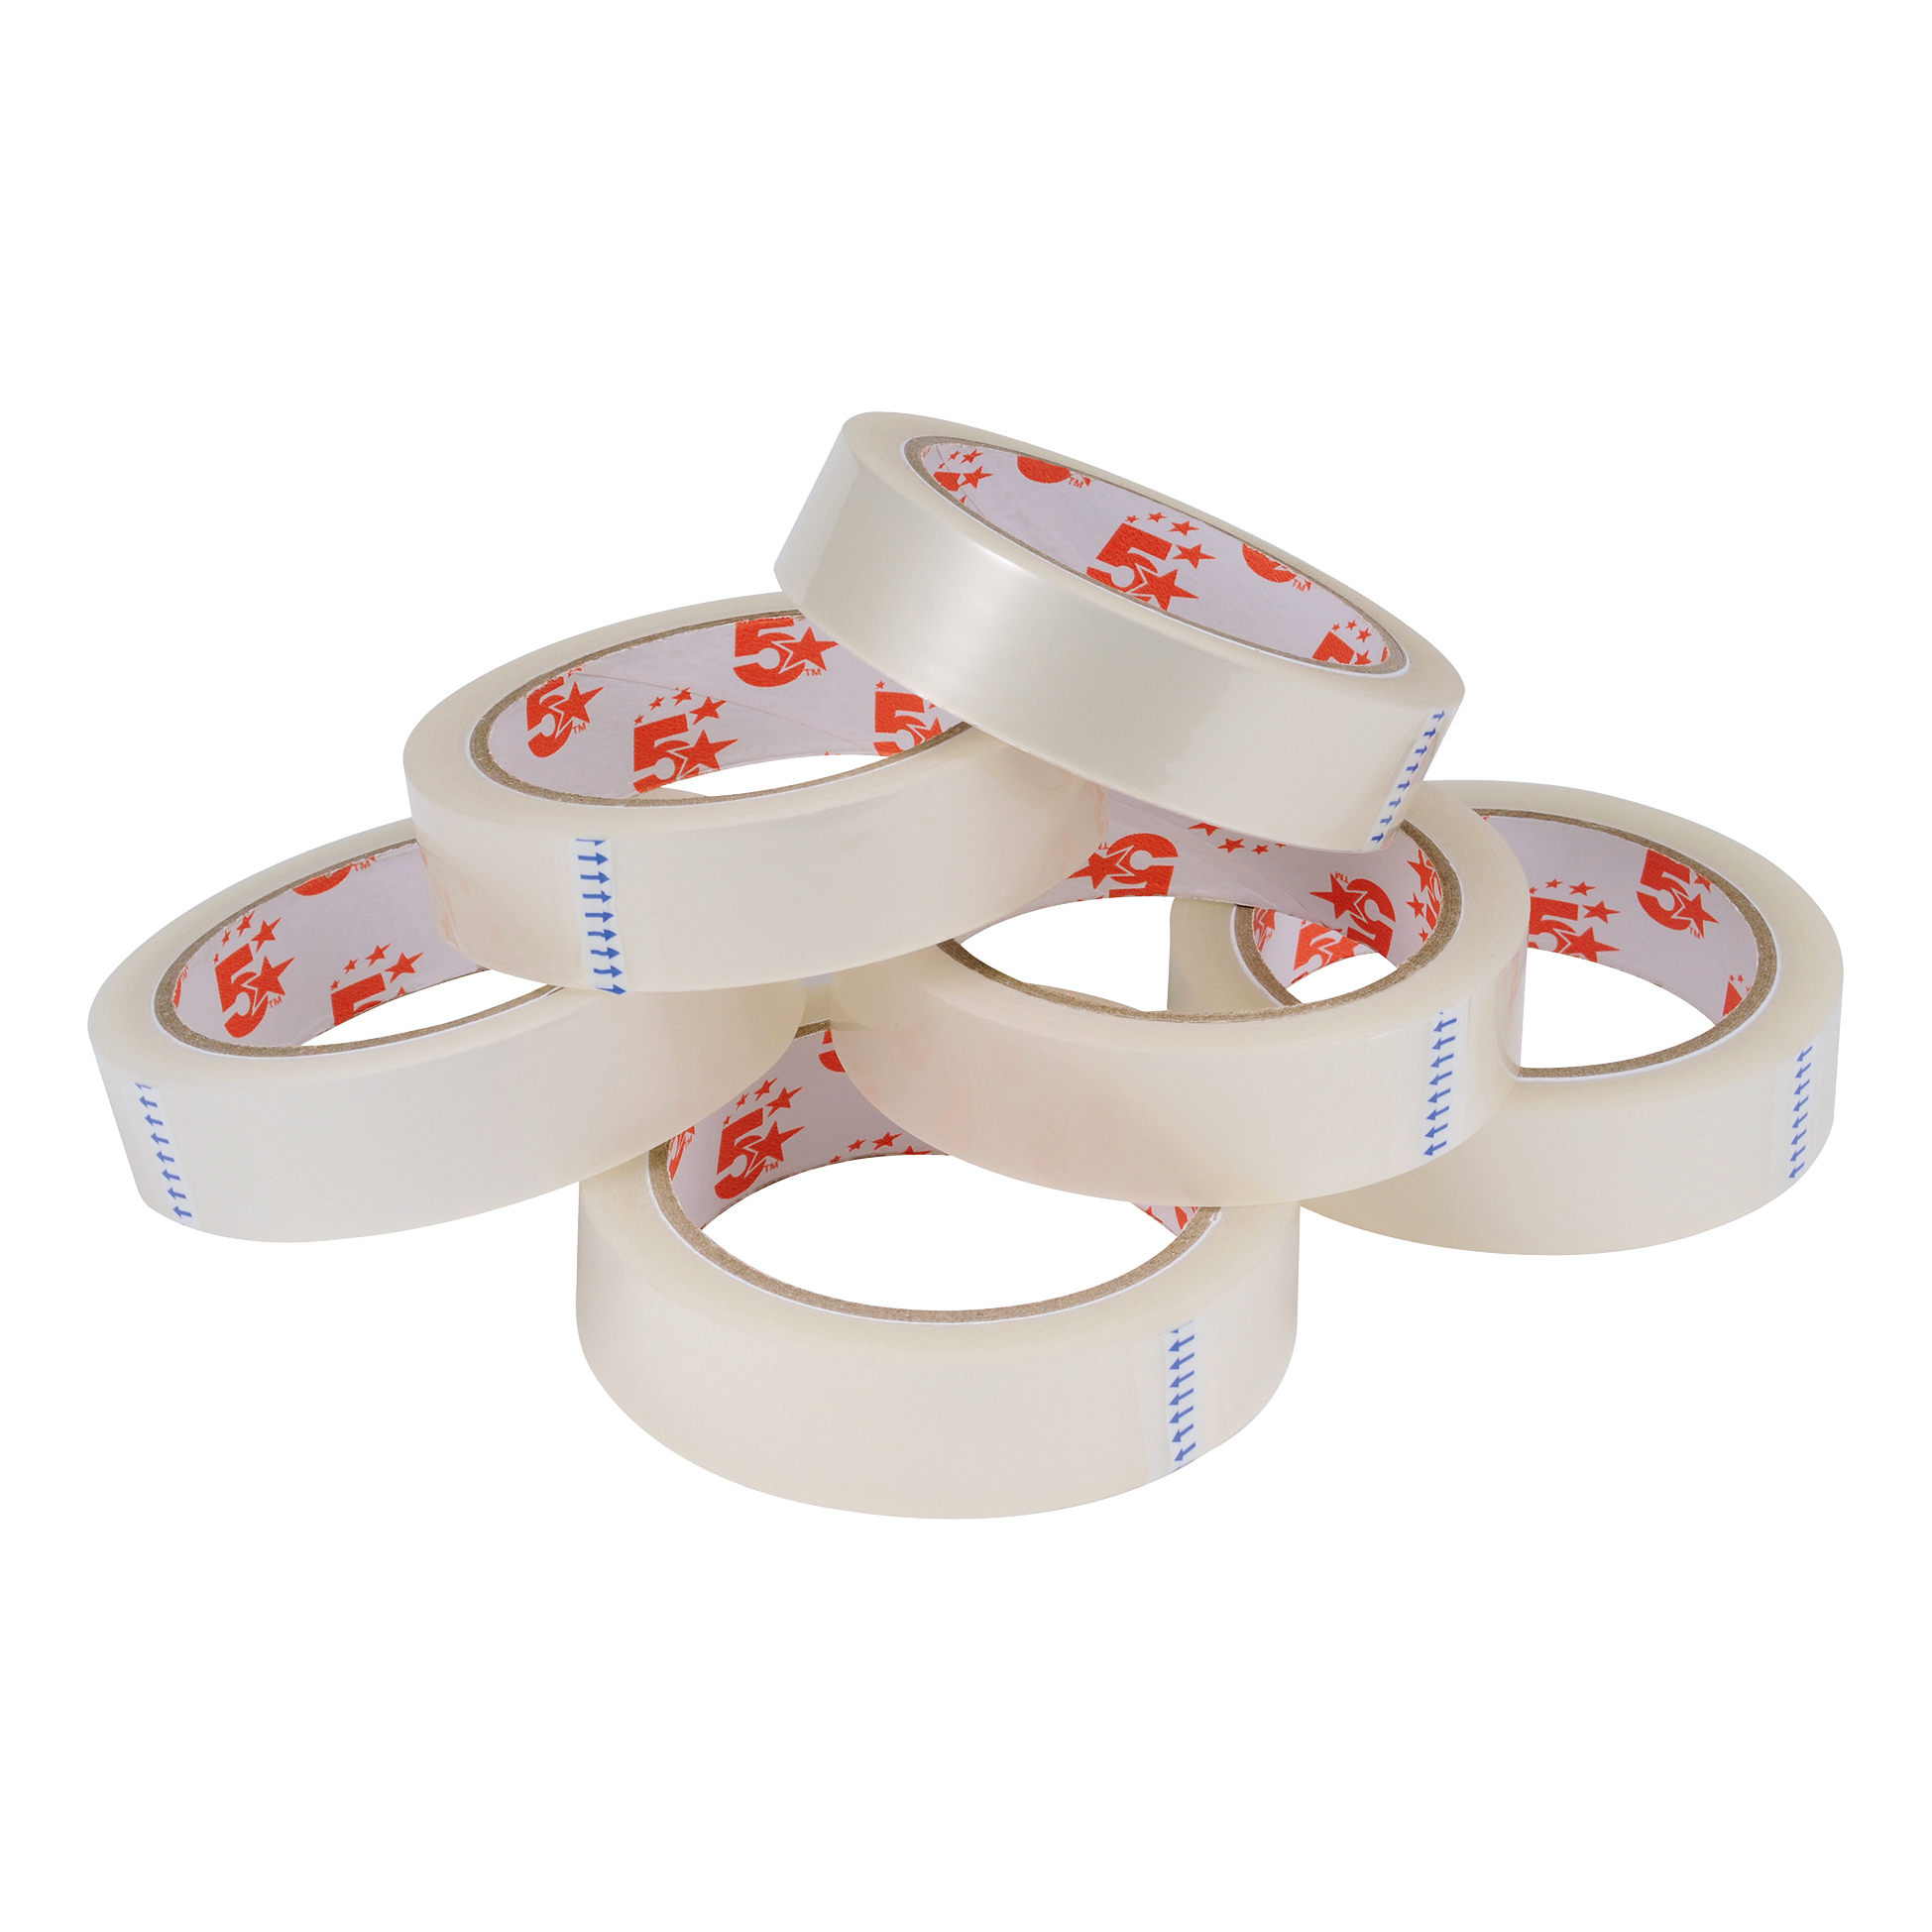 5 Star Office Clear Tape Roll Large Easy-tear Polypropylene 40 Microns 24mm x 66m Pack 6